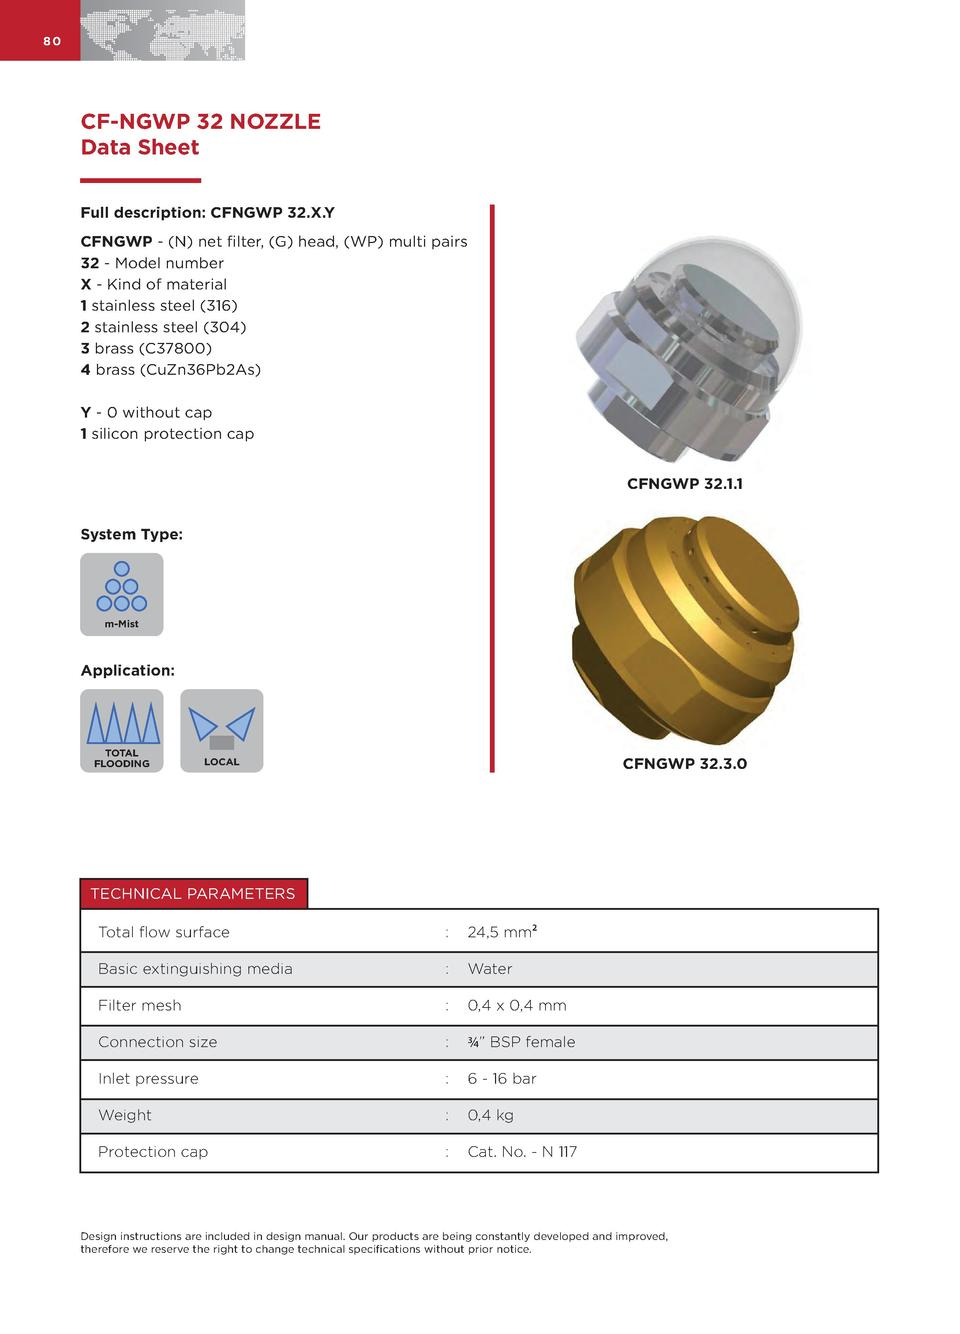 80  CF-NGWP 32 NOZZLE Data Sheet Full description  CFNGWP 32.X.Y CFNGWP -  N  net filter,  G  head,  WP  multi pairs 32 - ...